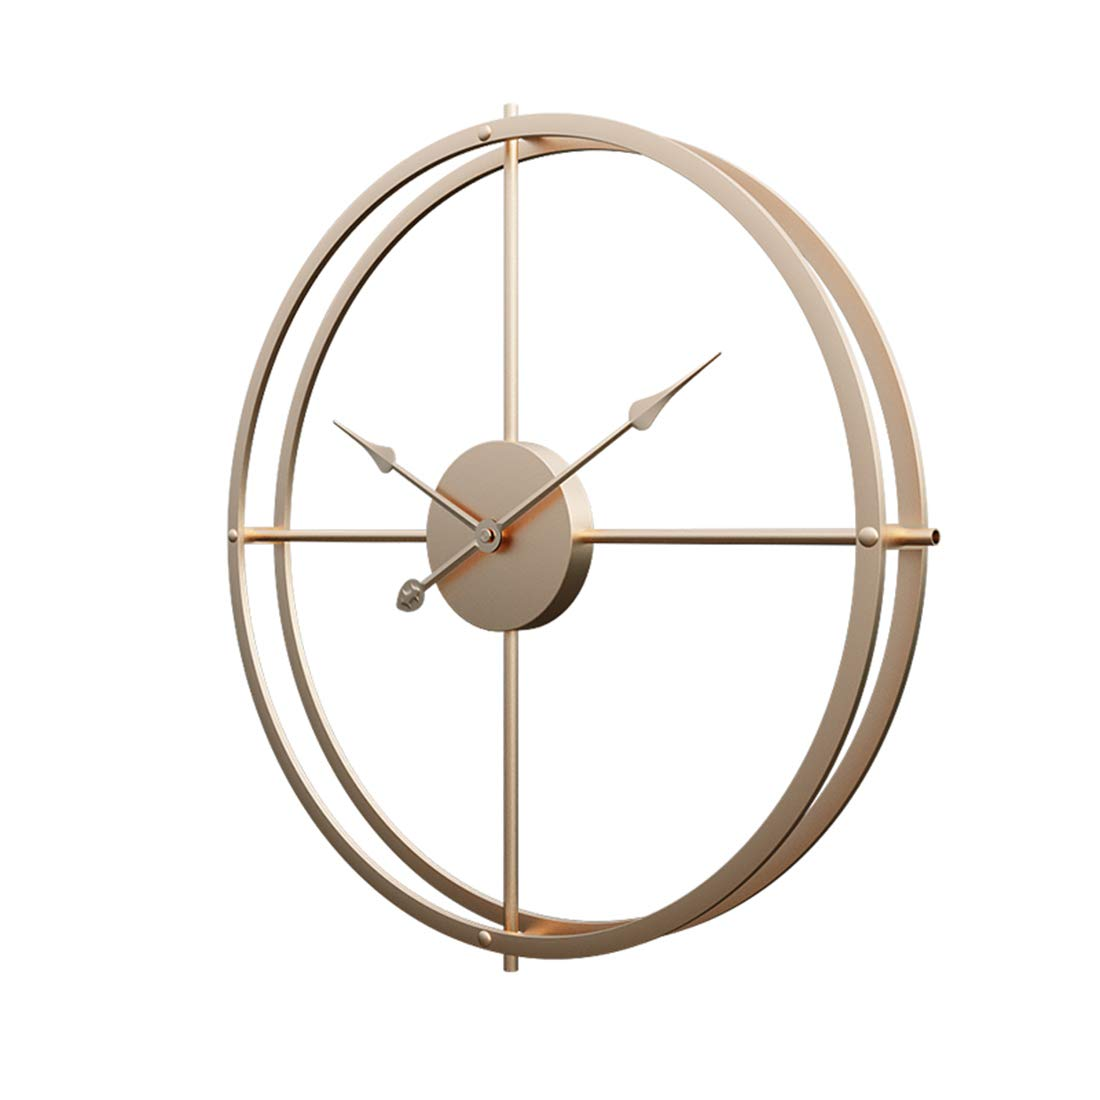 RuiyiF 24 Inch Silent Wall Clock Non Ticking Battery Operated, Oversize Farmhouse Rustic Metal Vintag Large Decorative Living Room Bedroom Office Kitchen Gold